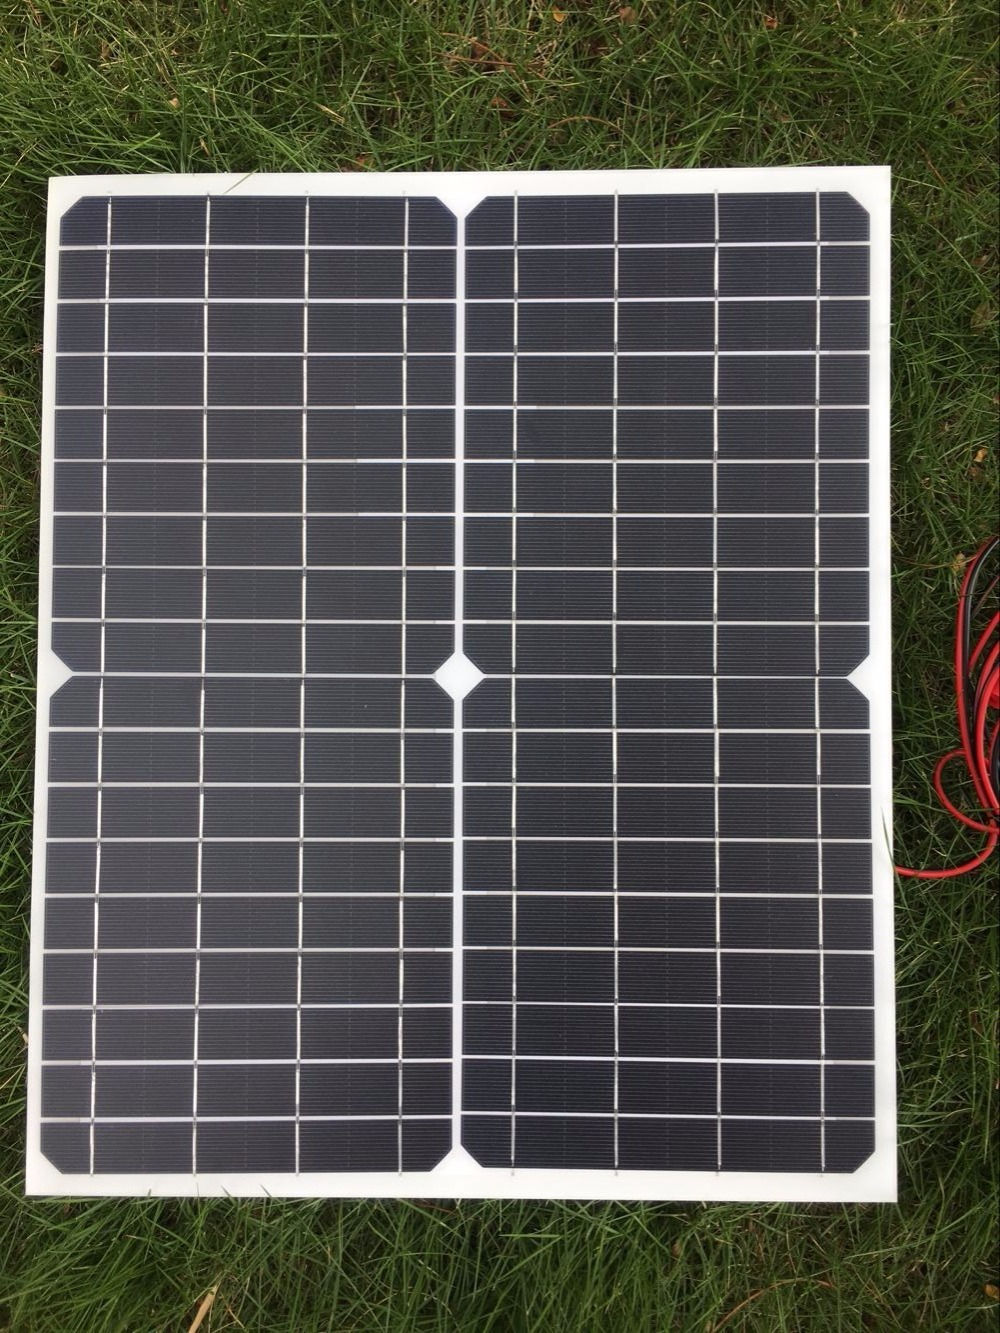 CNH 20W 18V Solar Panel Energy Semi Flexible Monocrystalline For RV Car Boat Battery Charger Solar Cells Module+ leory 5w 18v solar panel monocrystalline waterproof multi purpose solar cells charger for mobilephone cars boat motorcycle